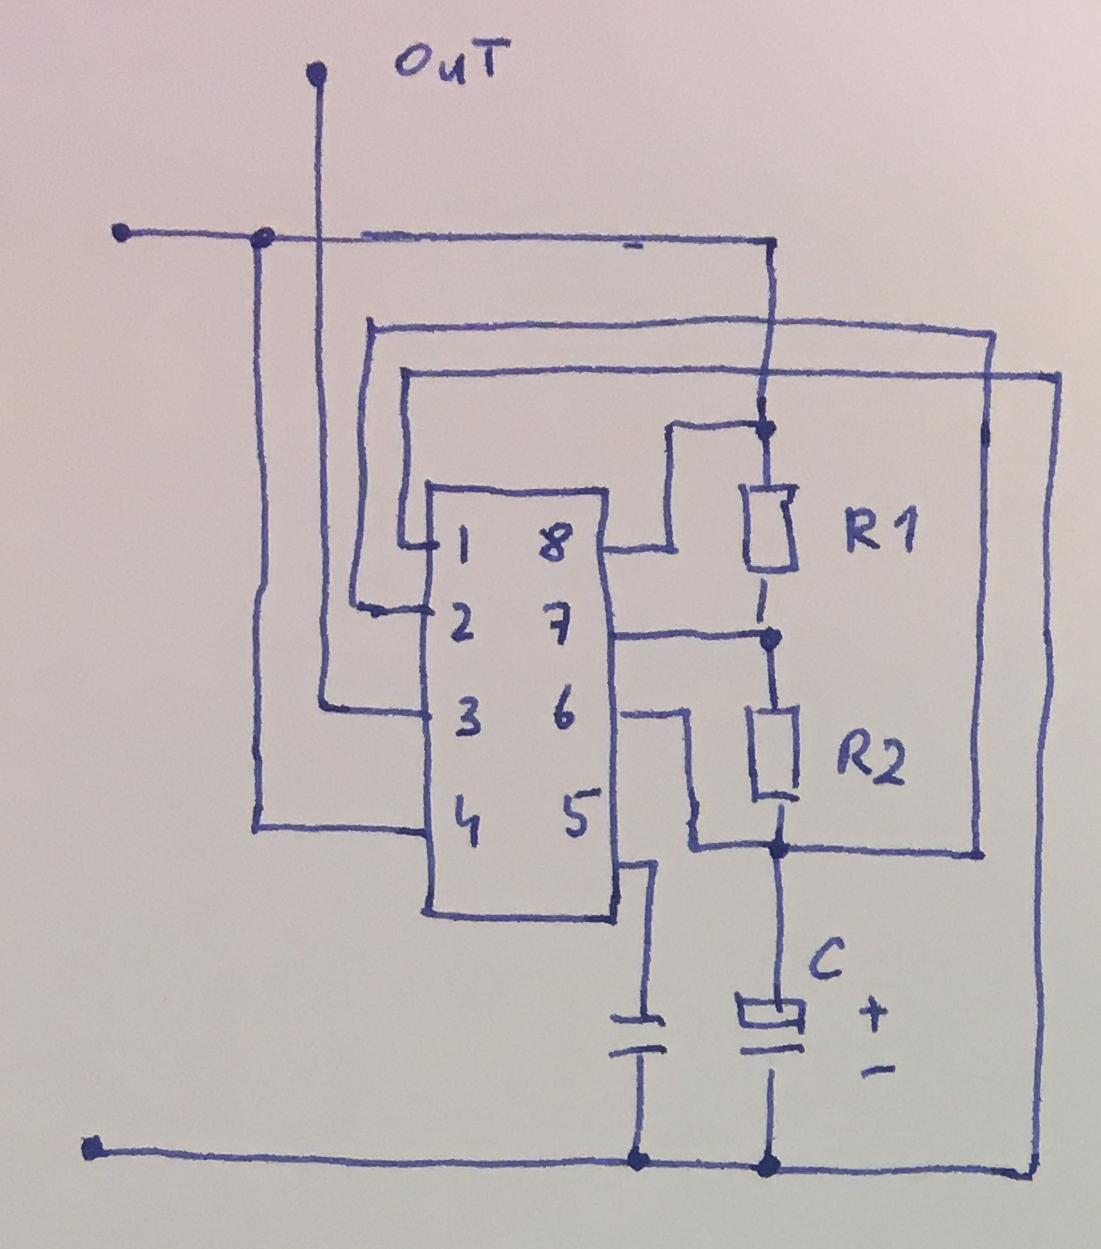 555 Tutorials Monostable Examples Typical Connections Of A Timer In Astable Mode